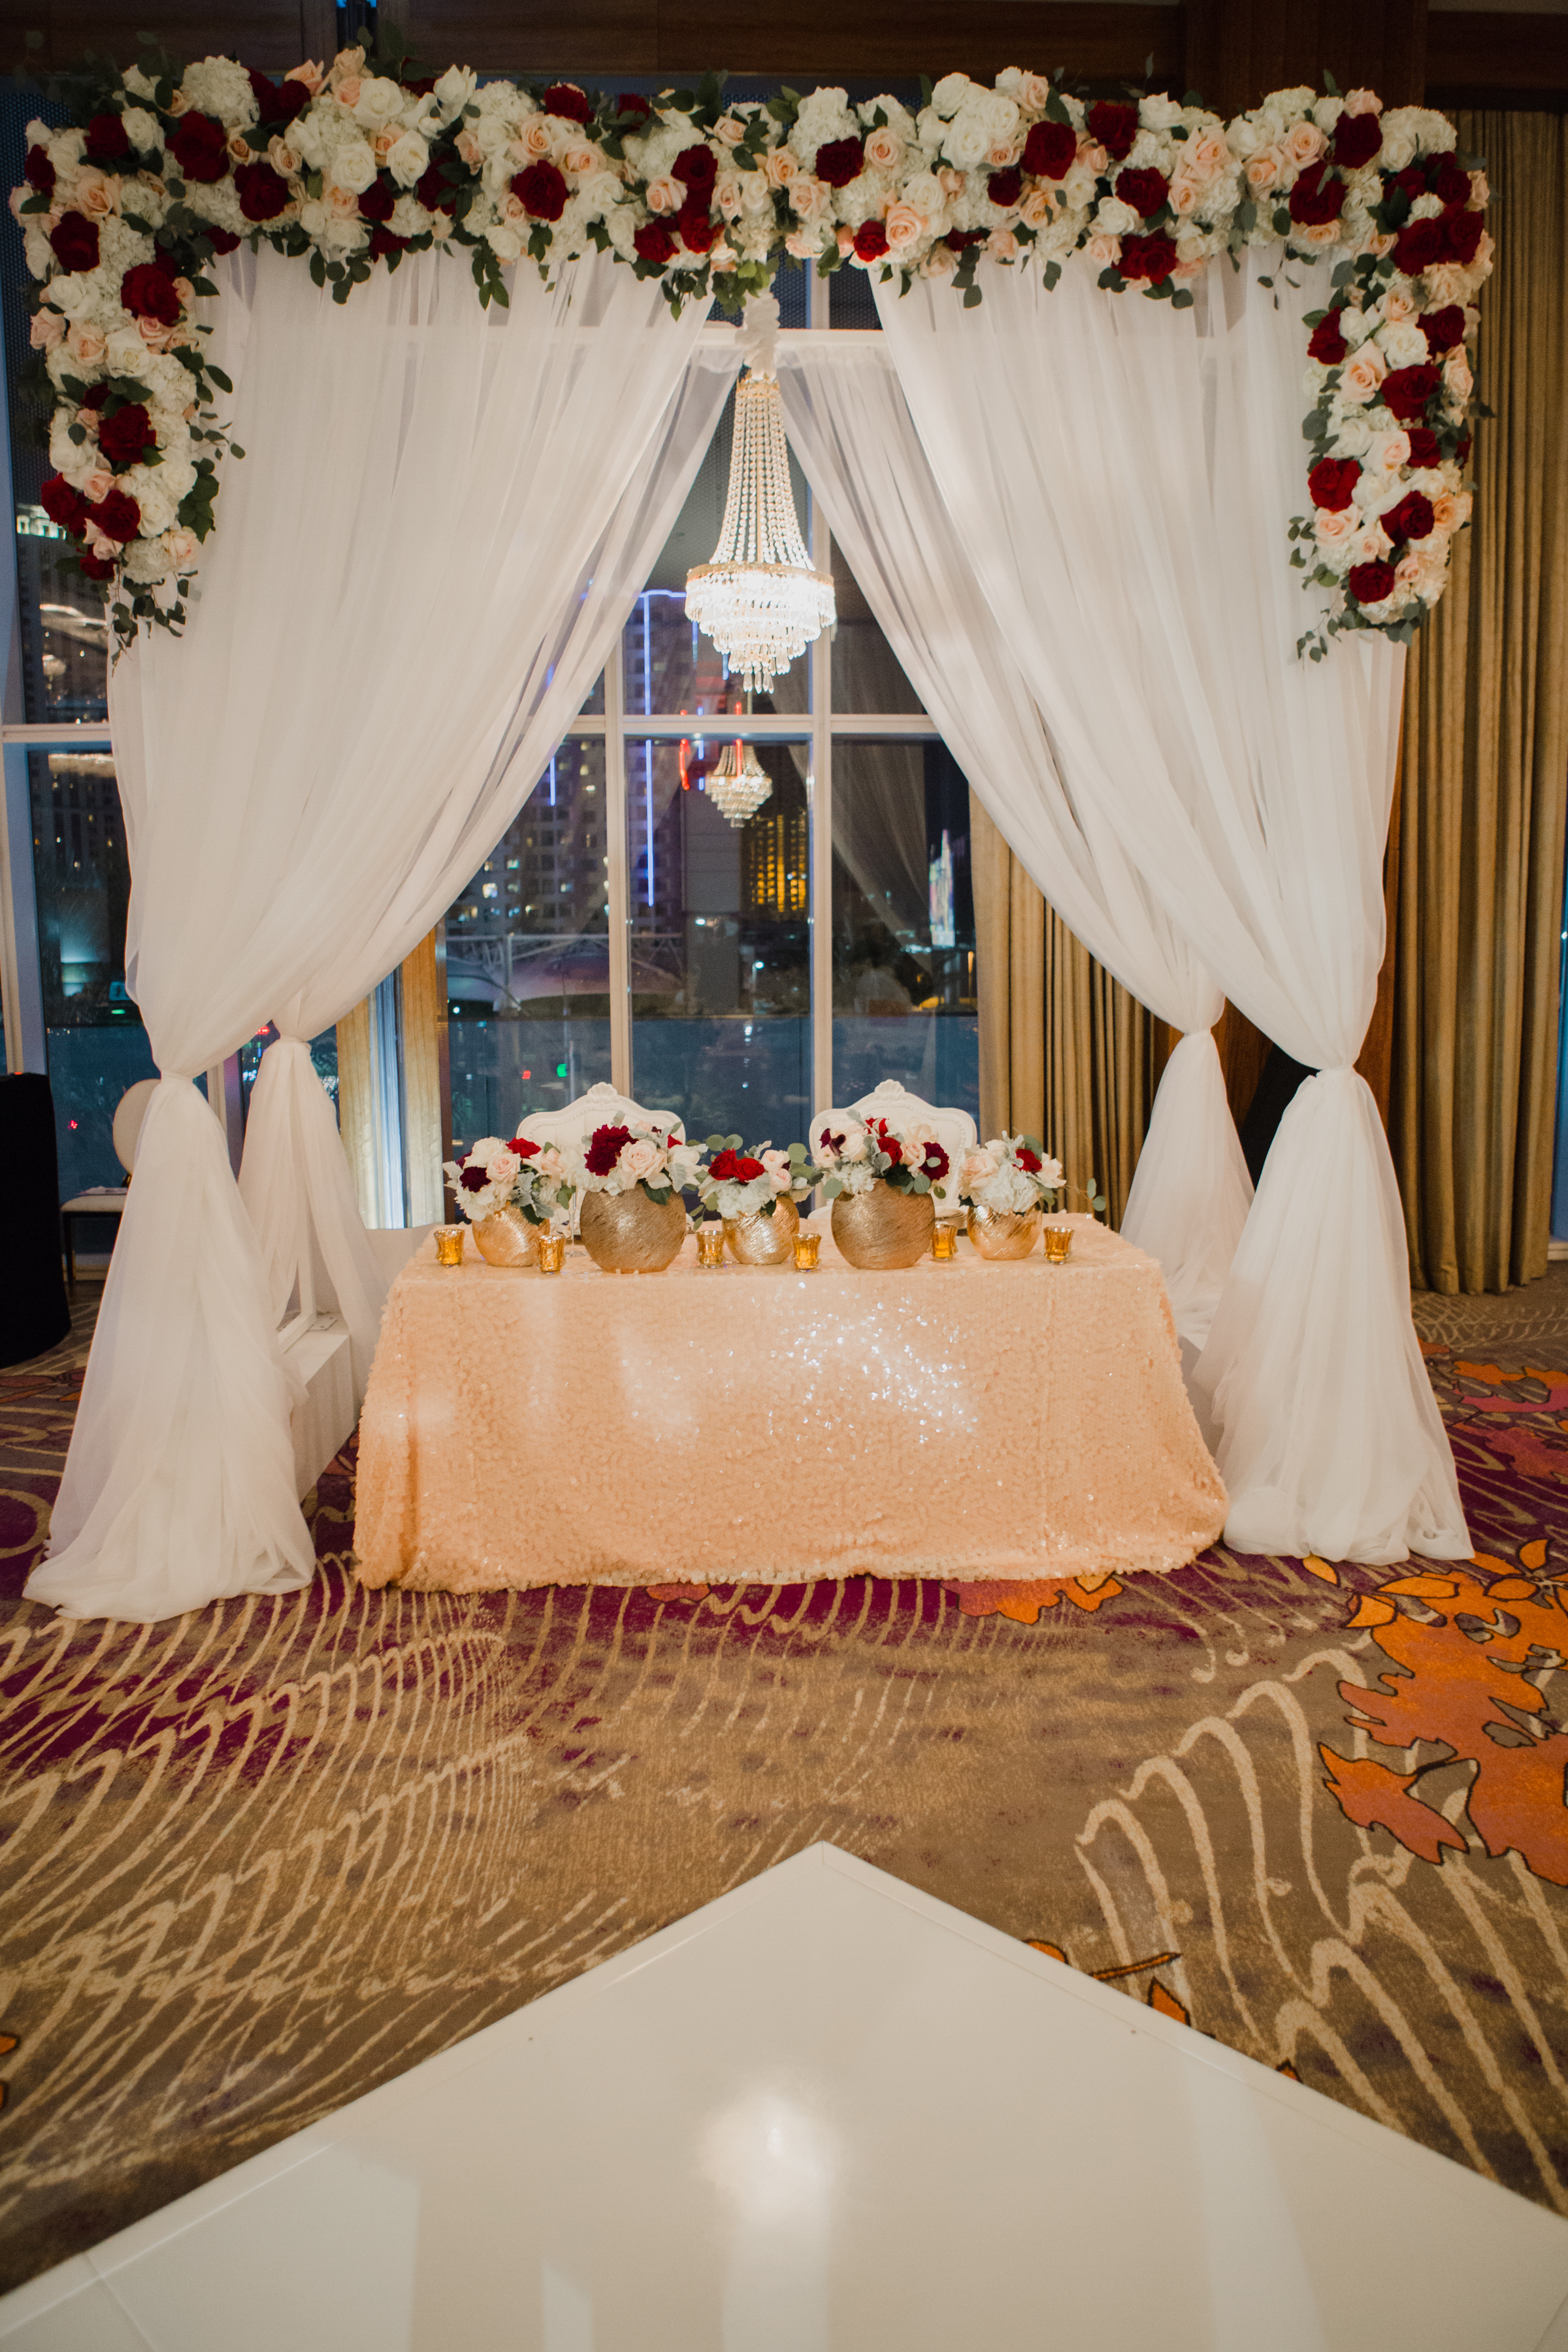 Sweetheart table under beautiful arch with lush floral garland.Luxury wedding at the Mandarin Oriental with a color scheme of white, blush, and pops of wine red produced by Las Vegas Wedding Planner Andrea Eppolito with photos by Stephen Salazar Photography.